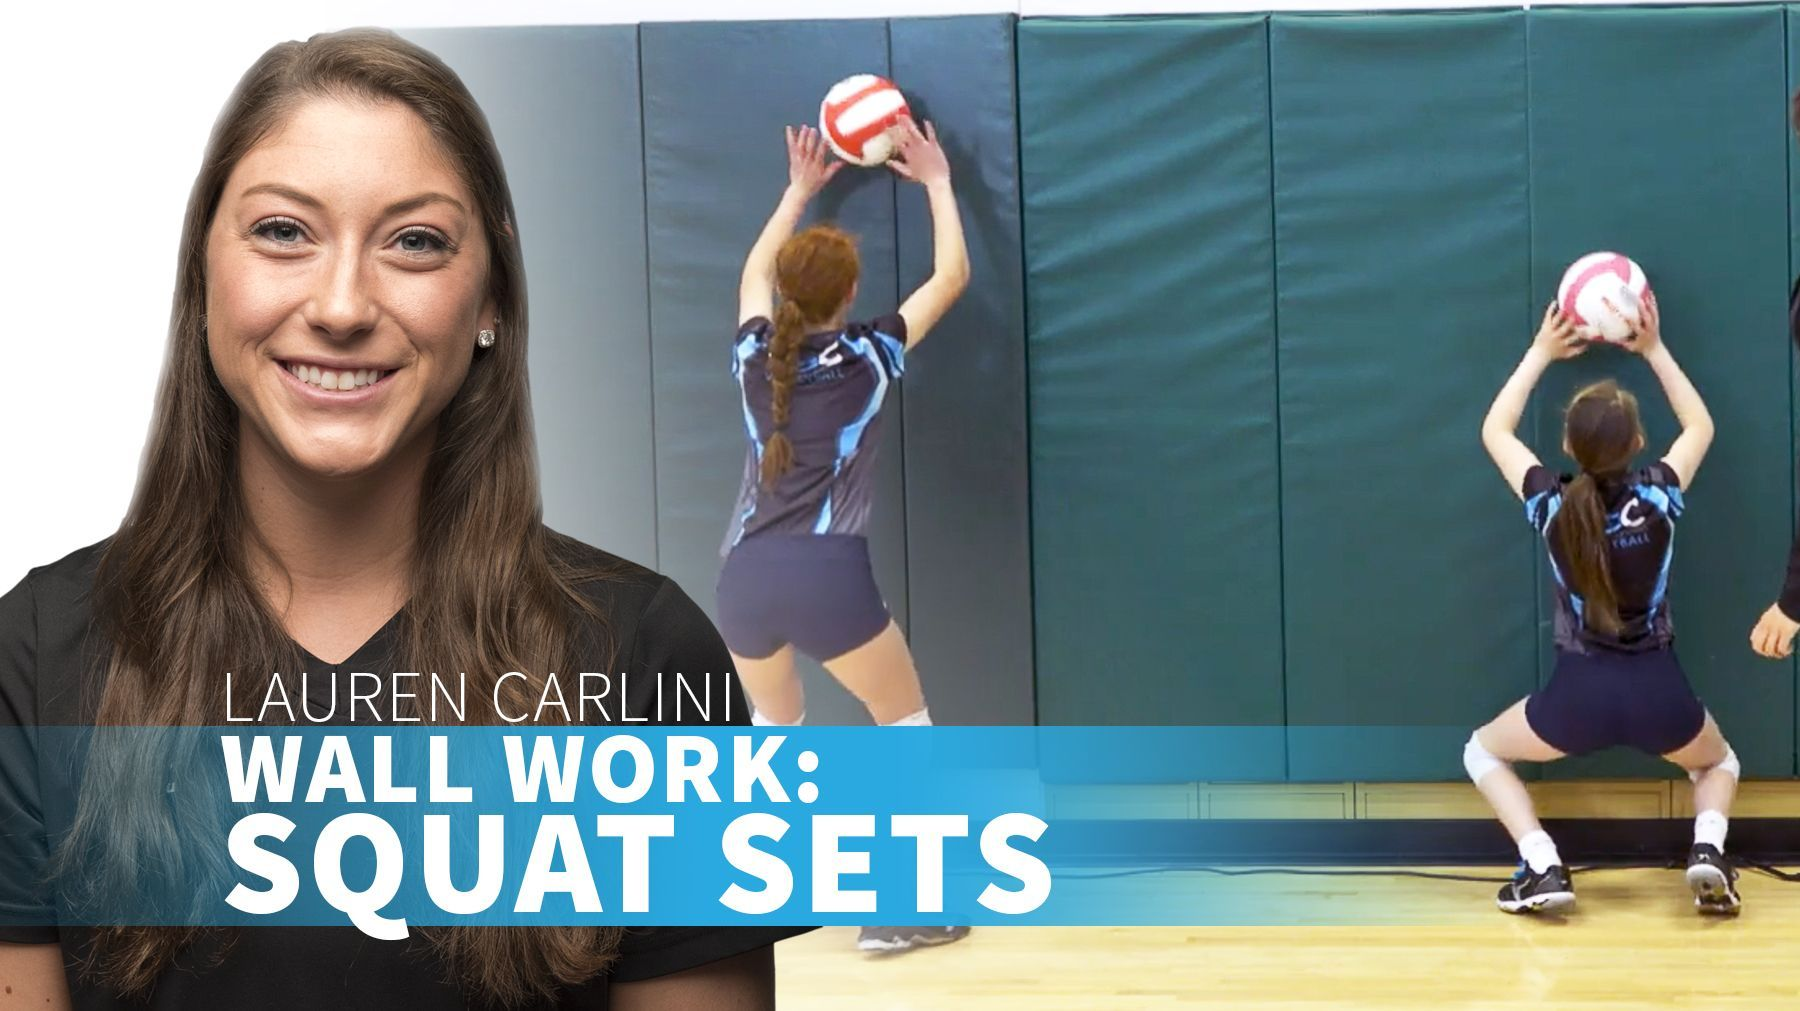 Wall Work Squat Sets The Art Of Coaching Volleyball Coaching Volleyball Volleyball Drills For Beginners Volleyball Training